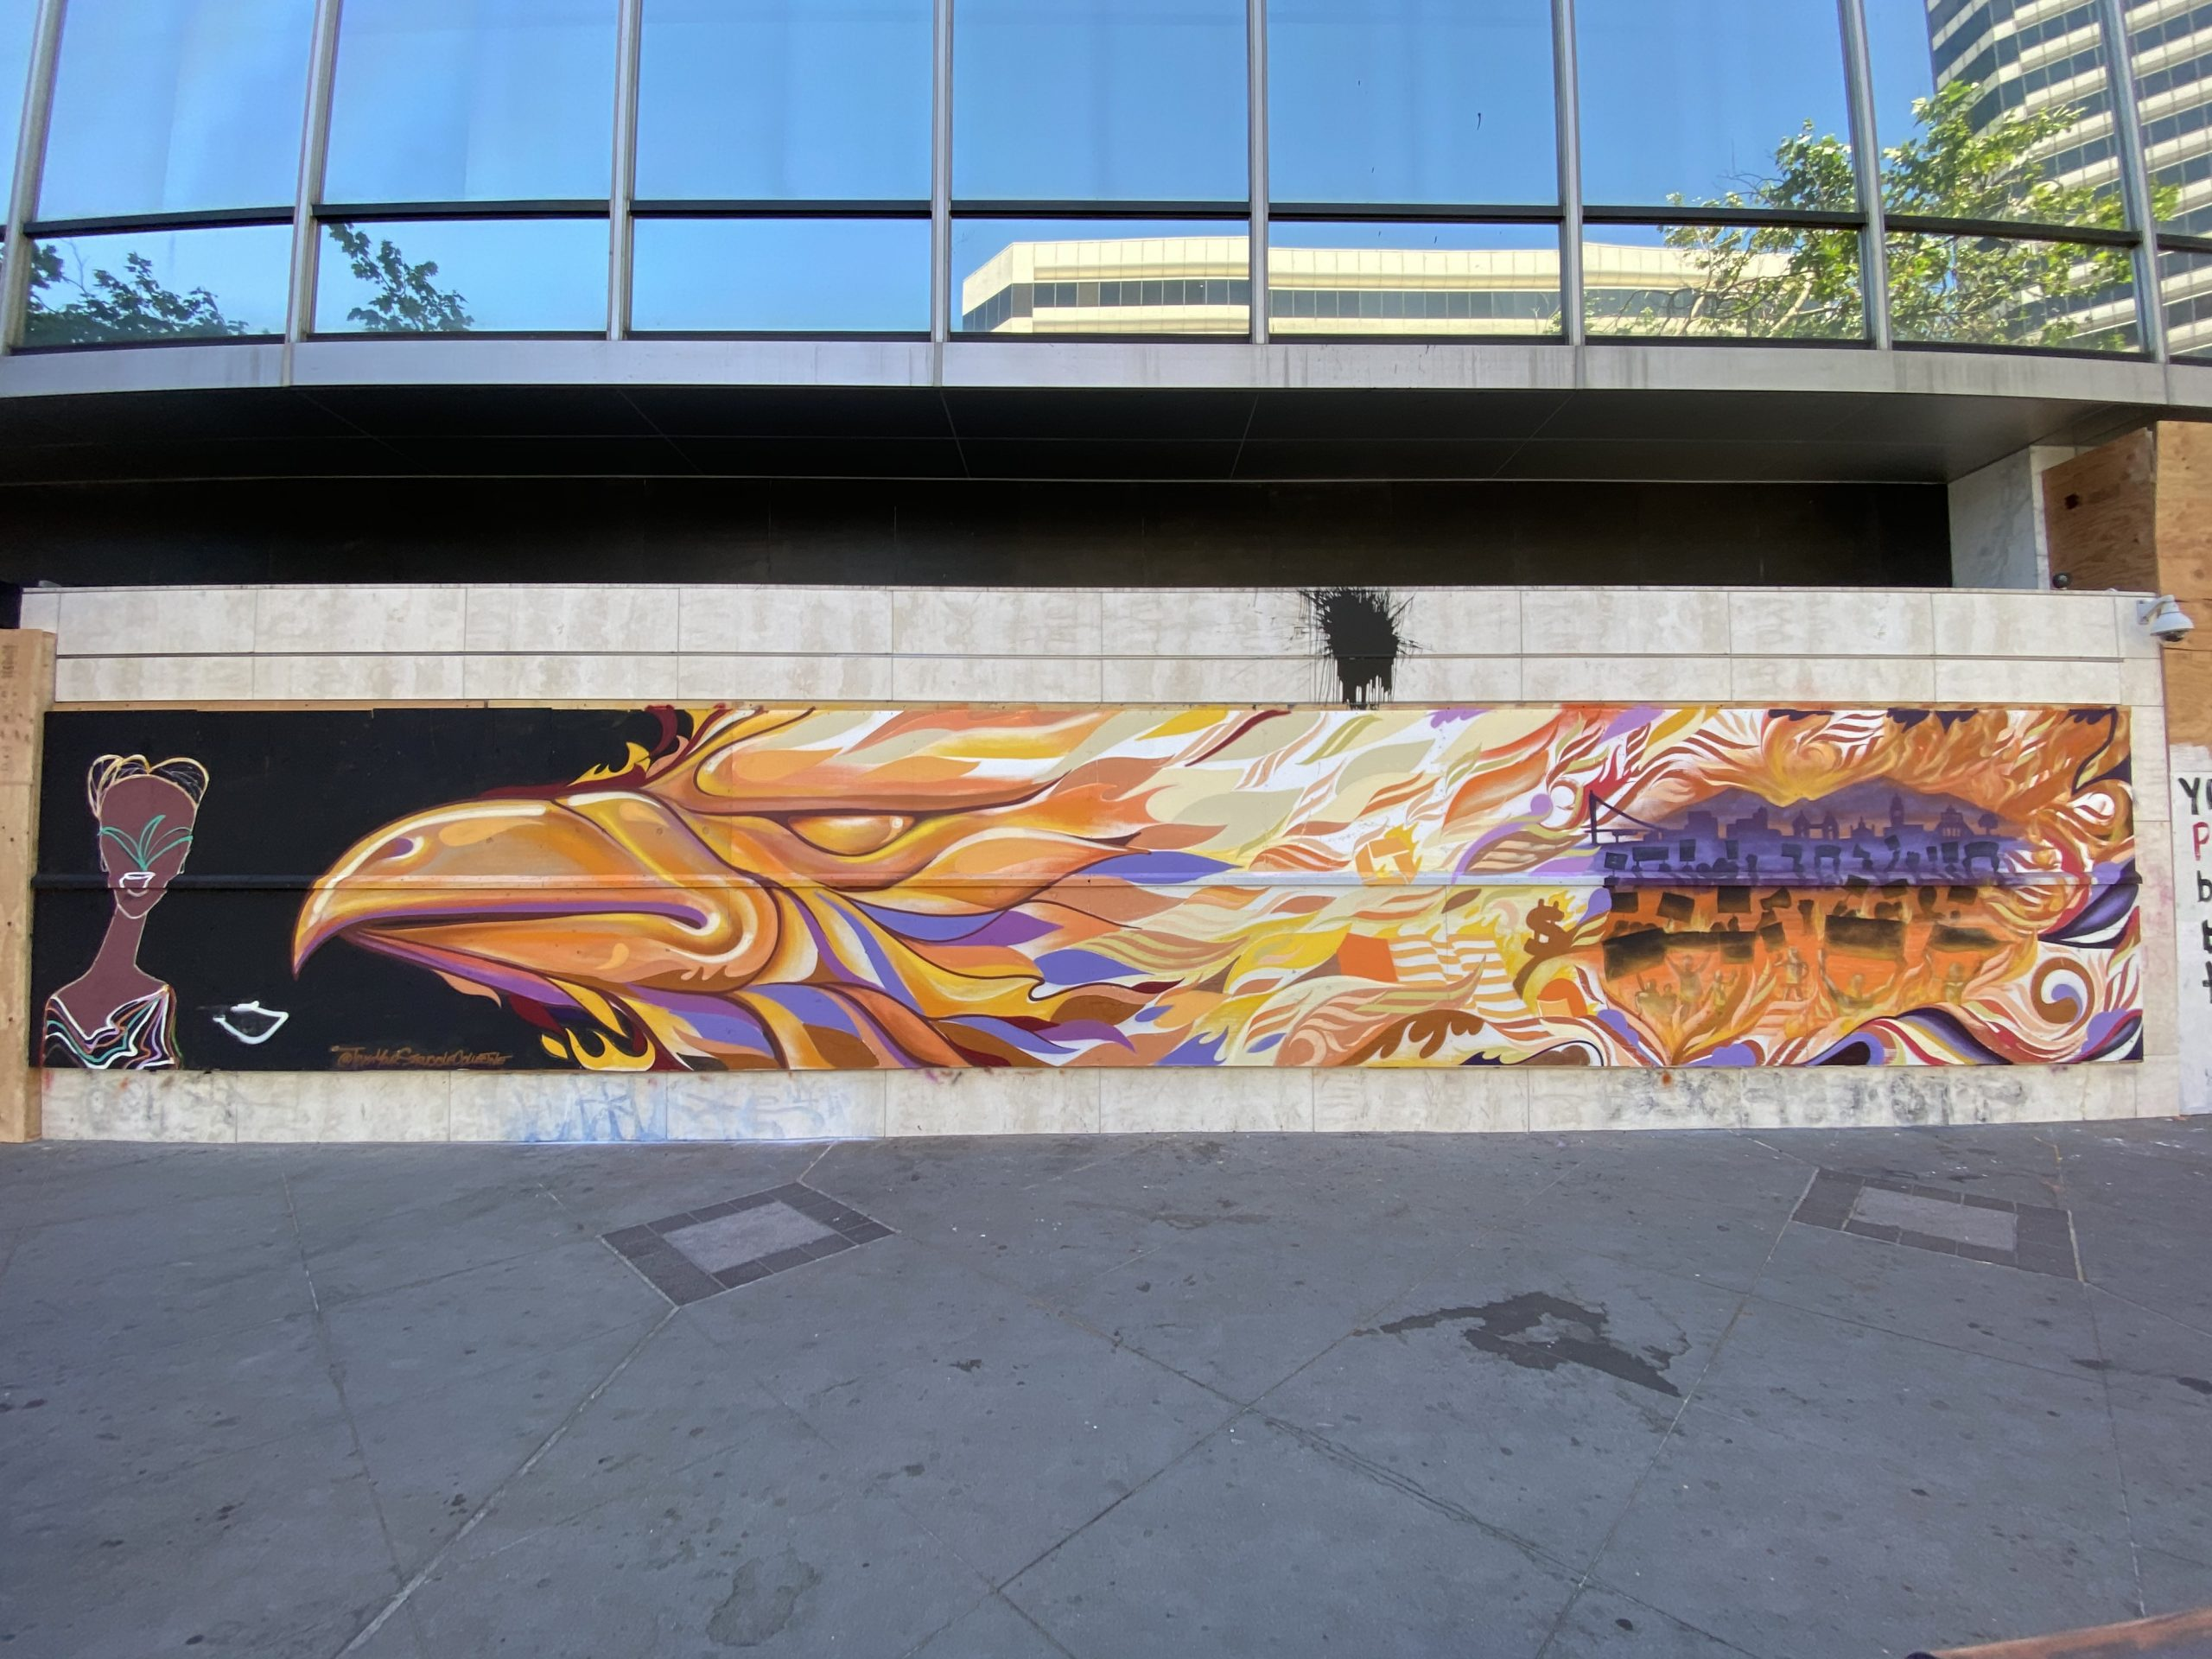 A large mural with an eagle in fire orange colors.